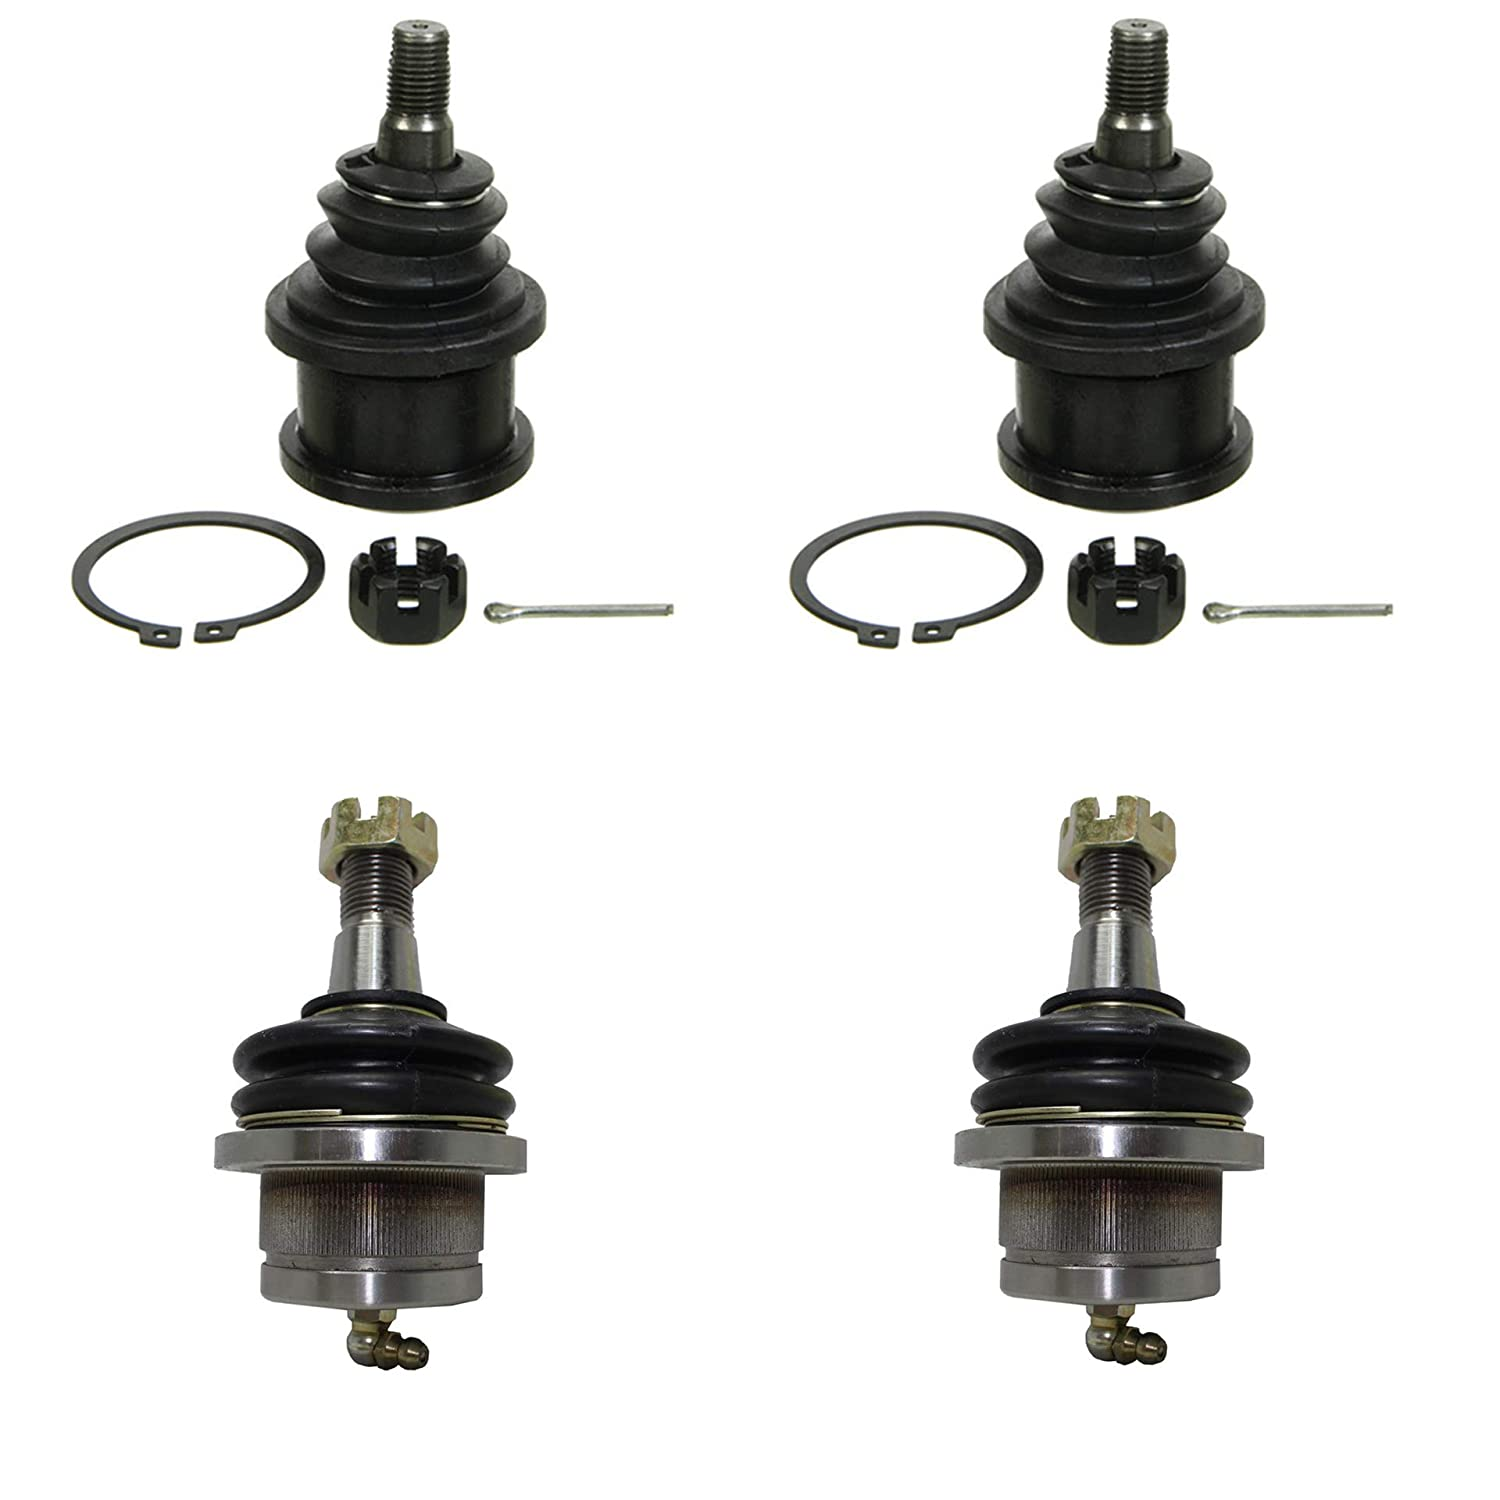 1997-2003 Ford F-150 4pc Front Upper /& Lower Ball Joint for 1997-2002 Ford Expedition - - 1998-2002 Lincoln Navigator Detroit Axle